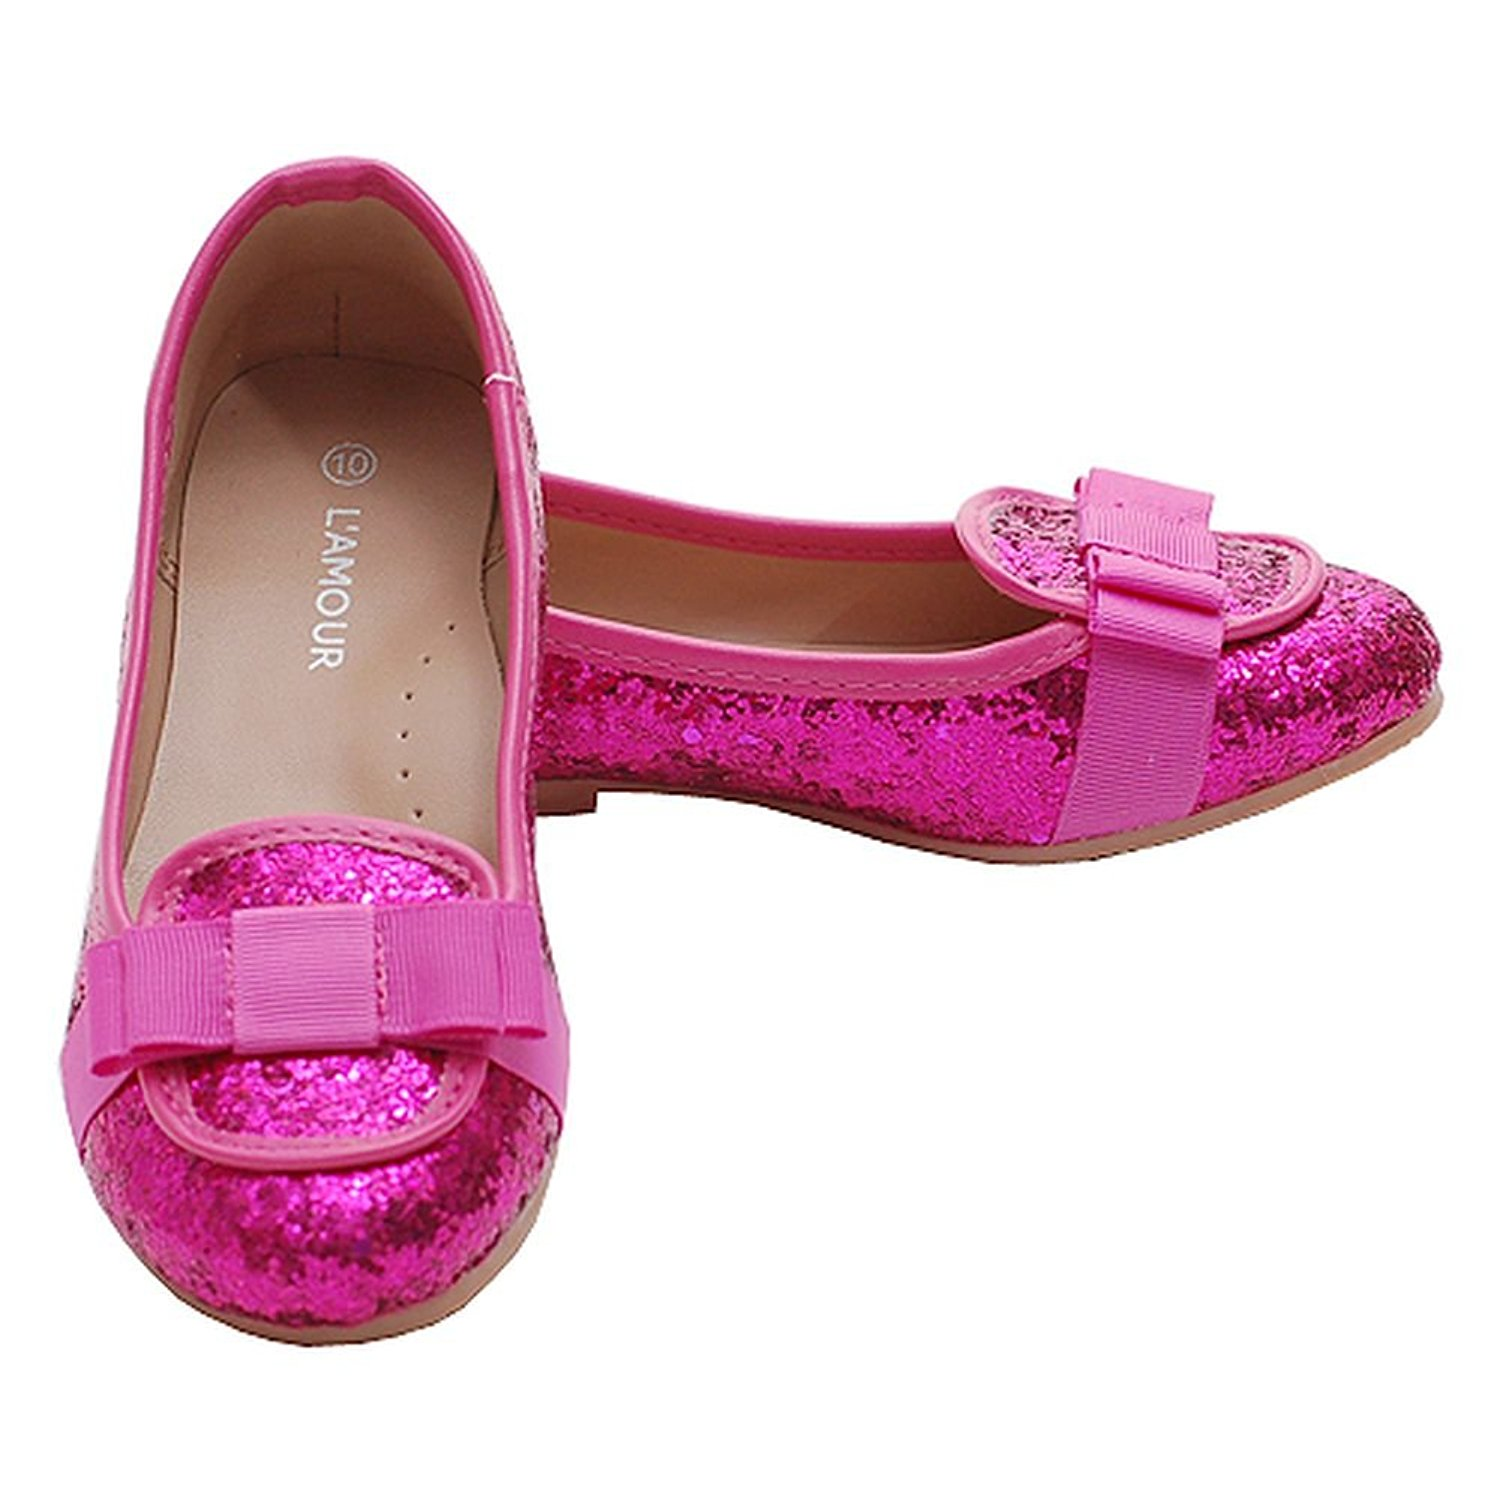 Little girl shoes photo